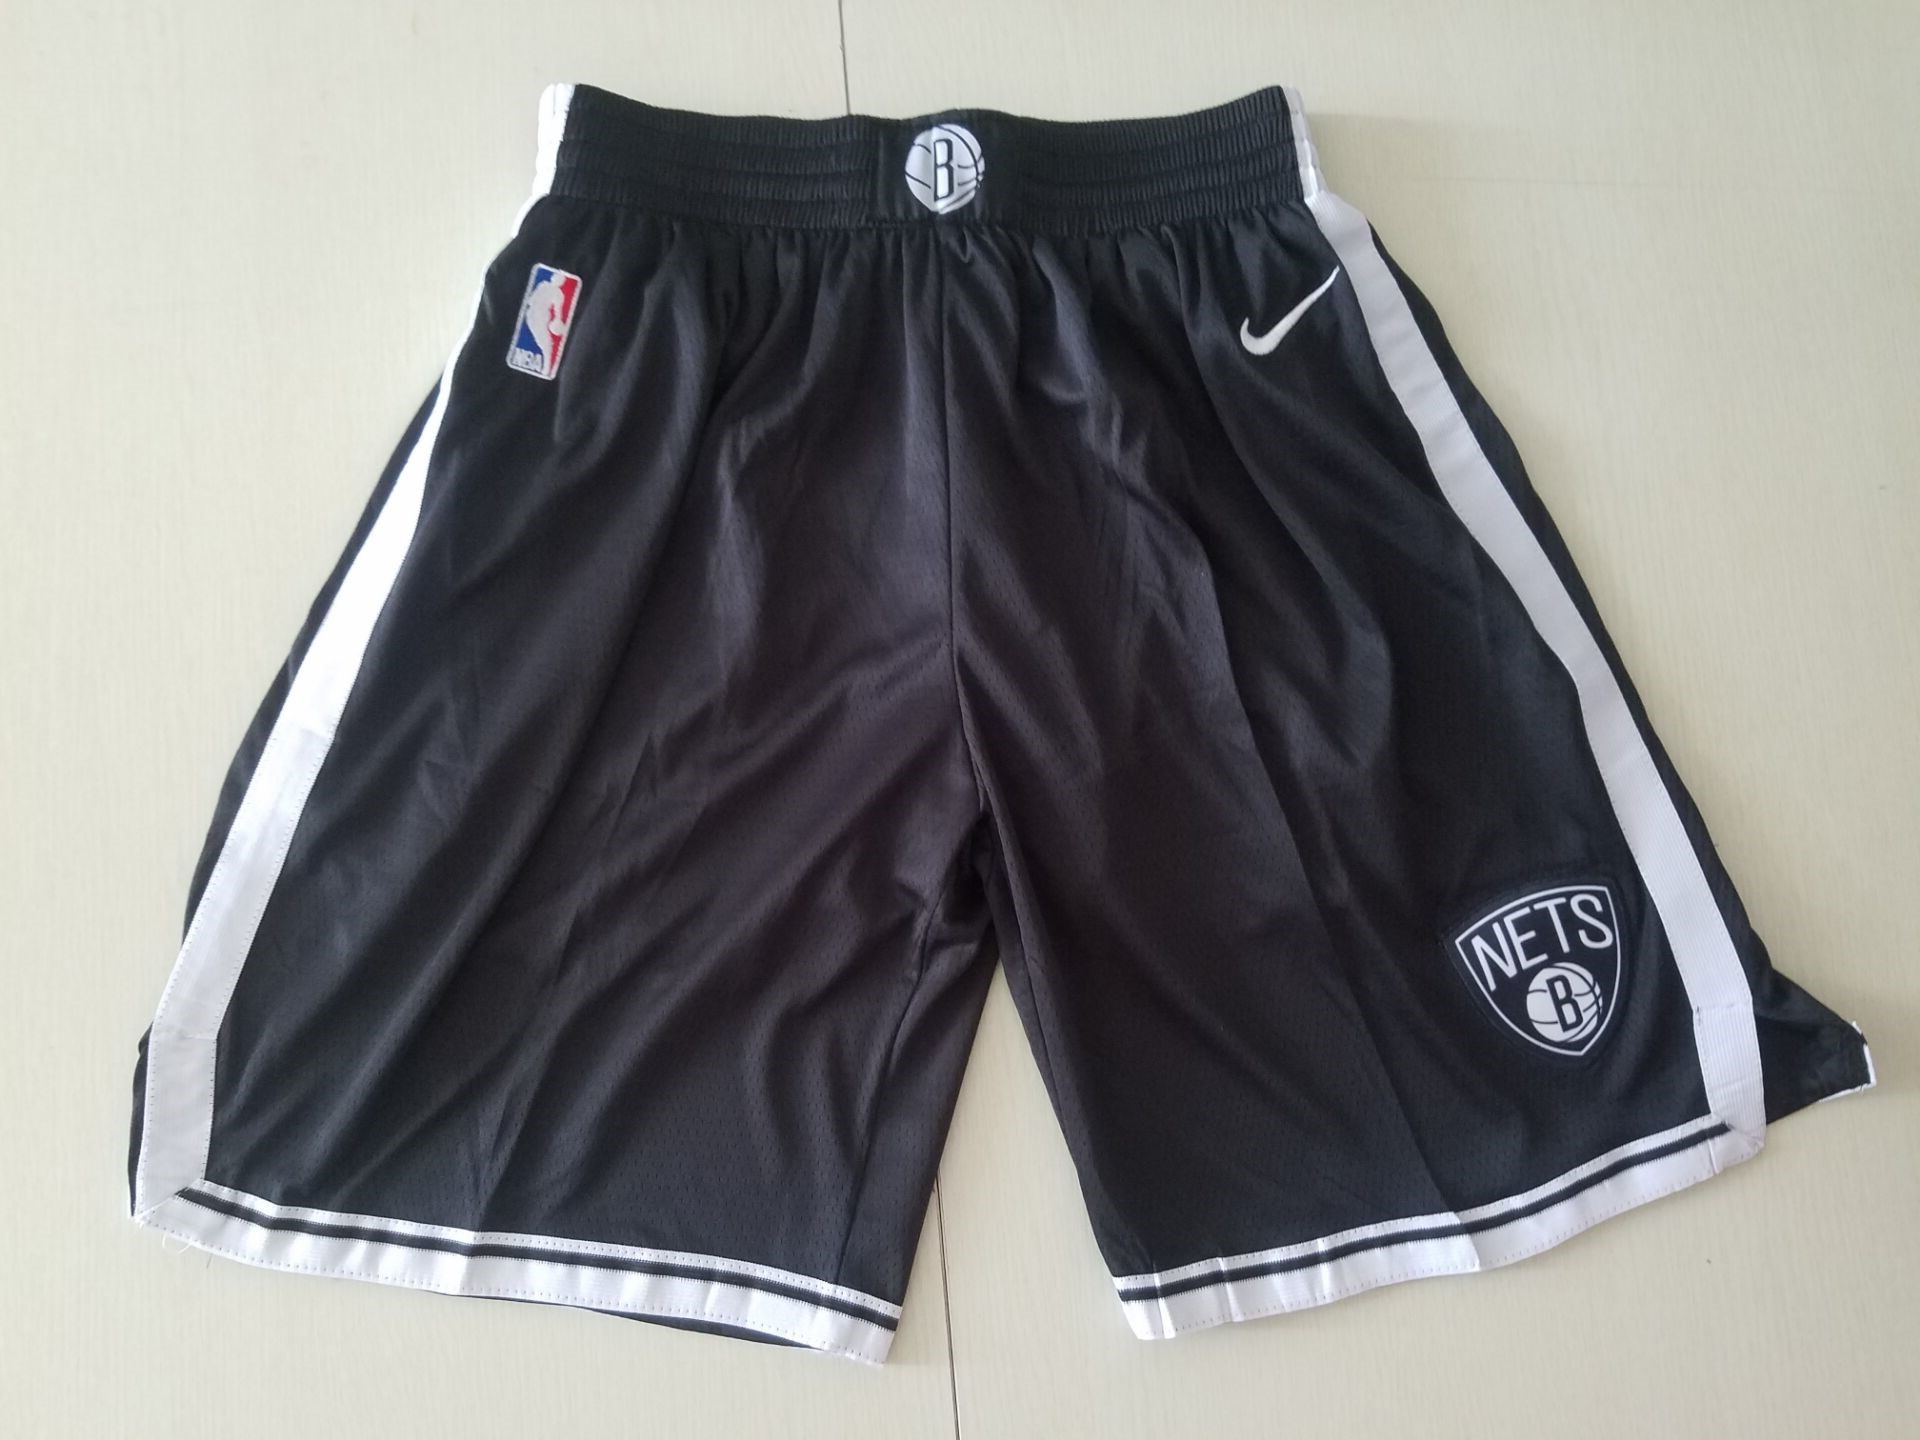 Youth NBA Nike Brooklyn Nets white shorts style2